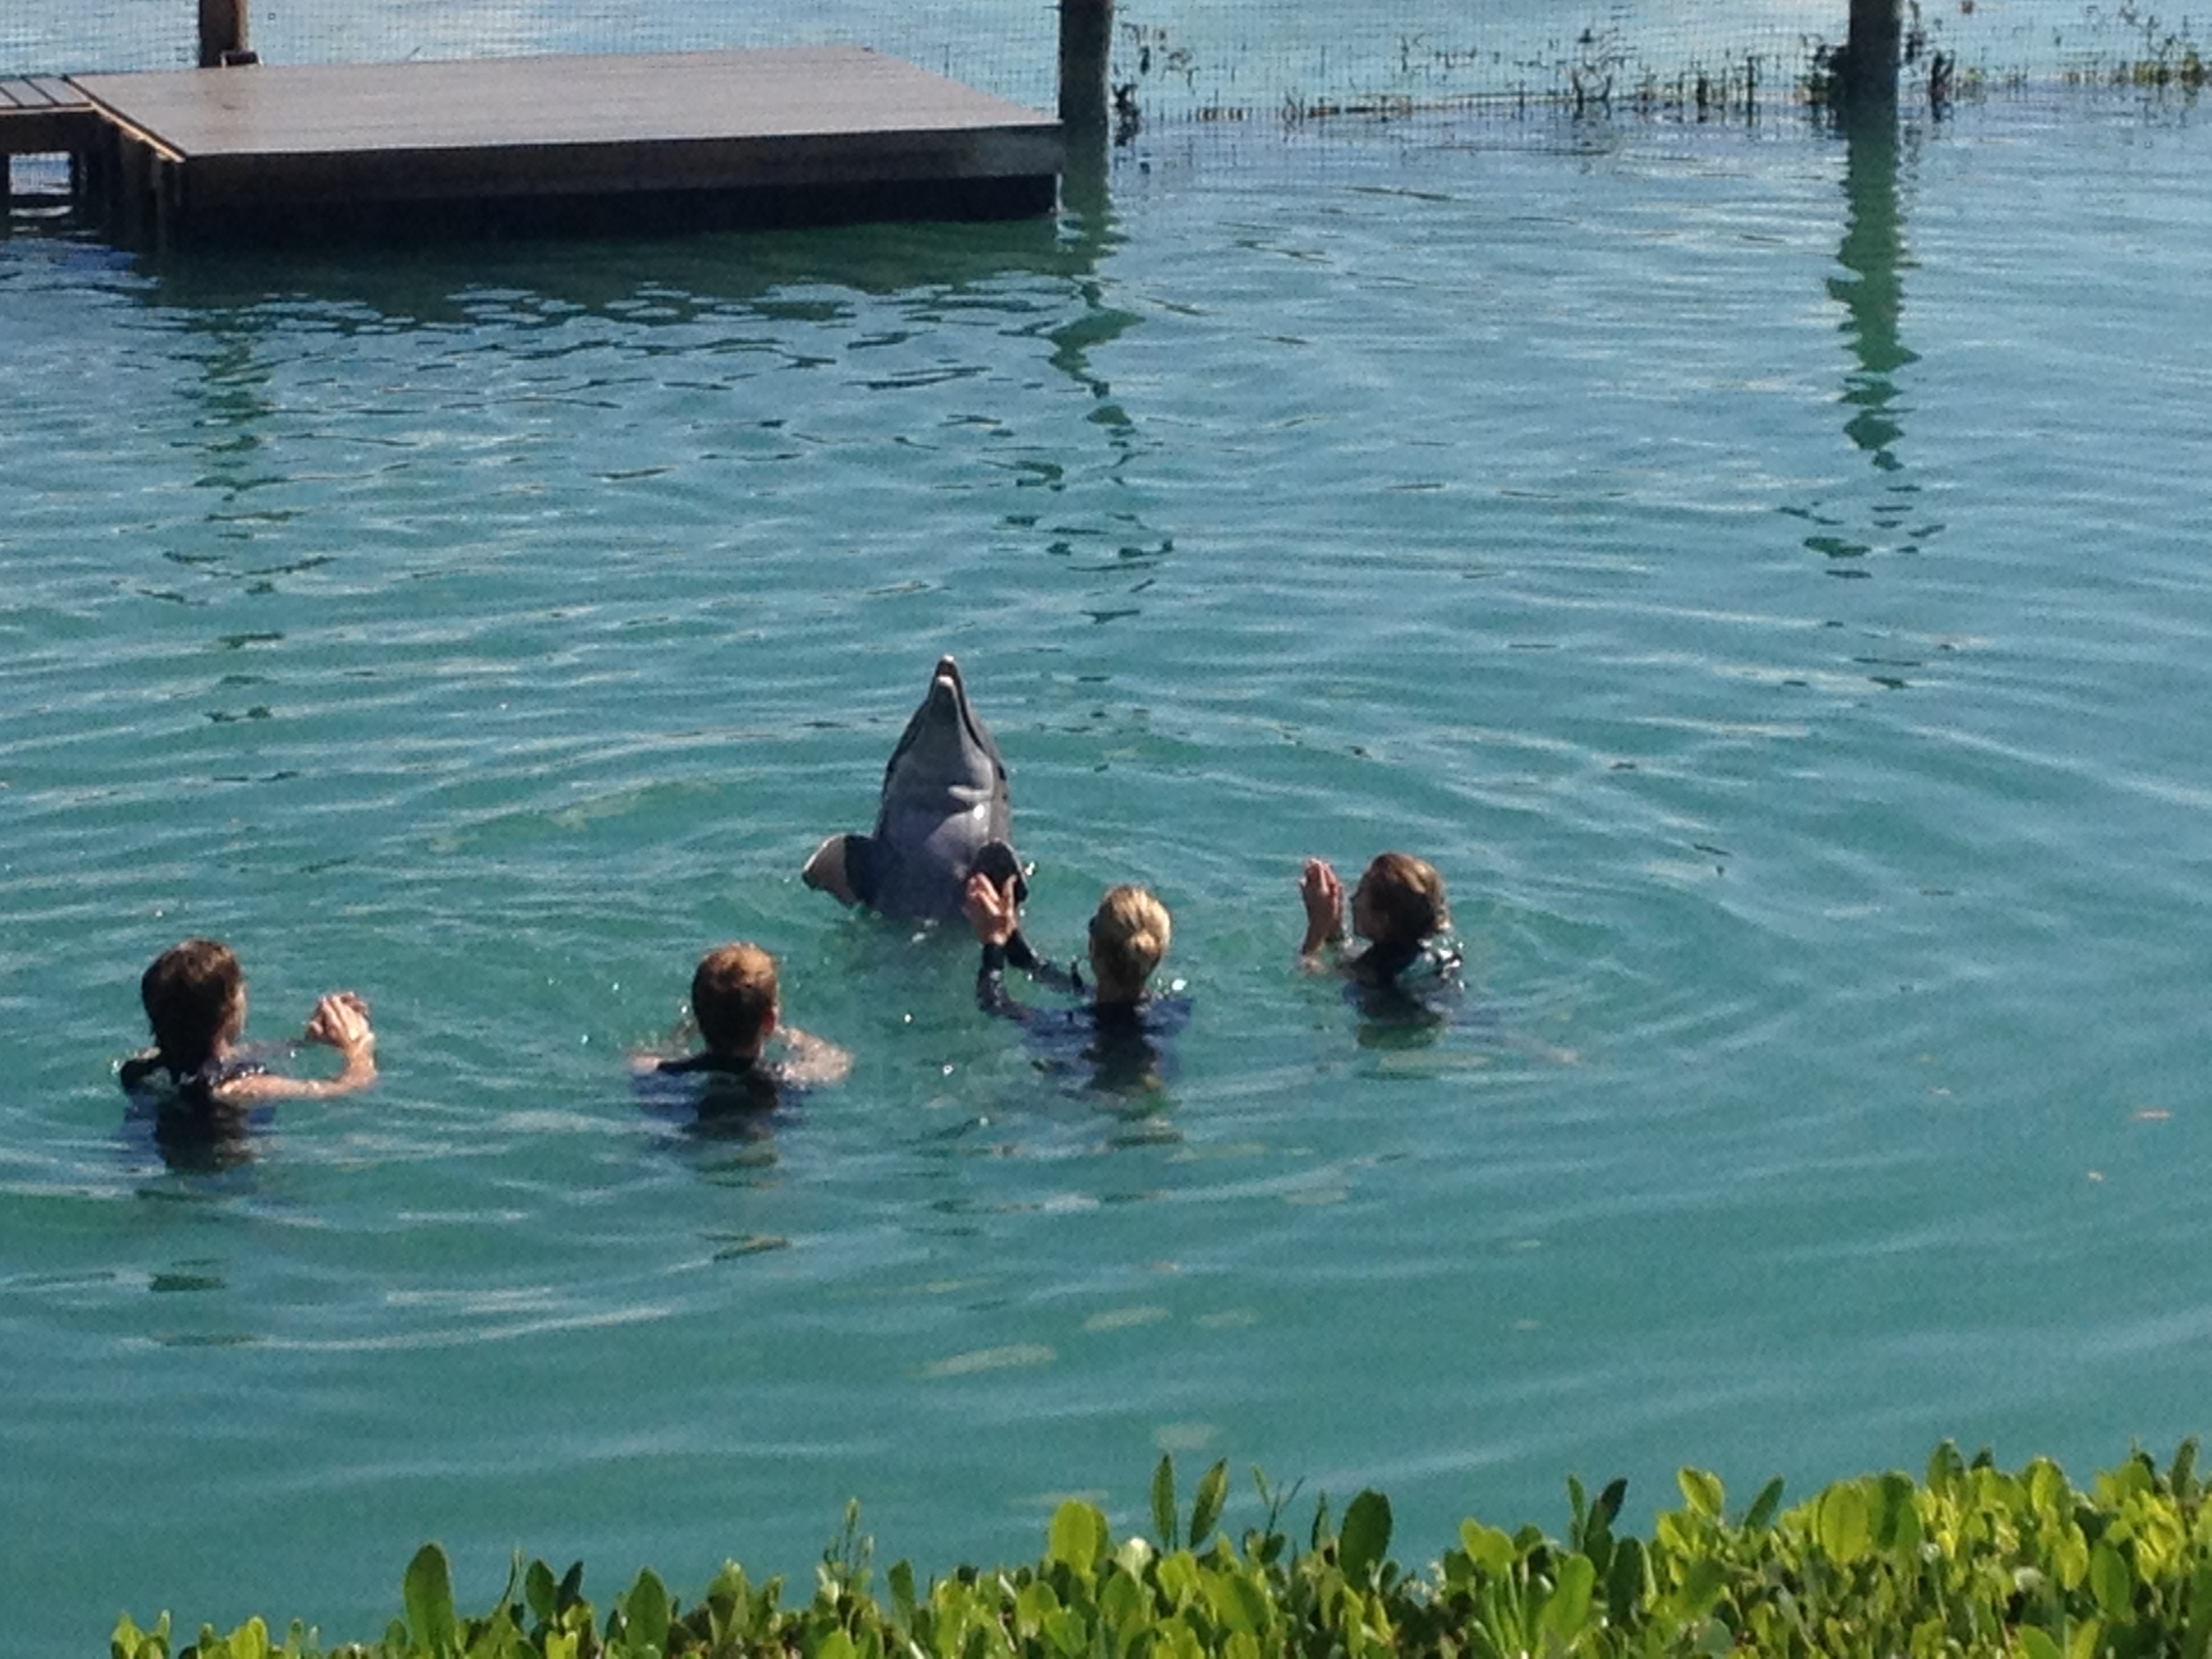 Kids in the water with dolphins